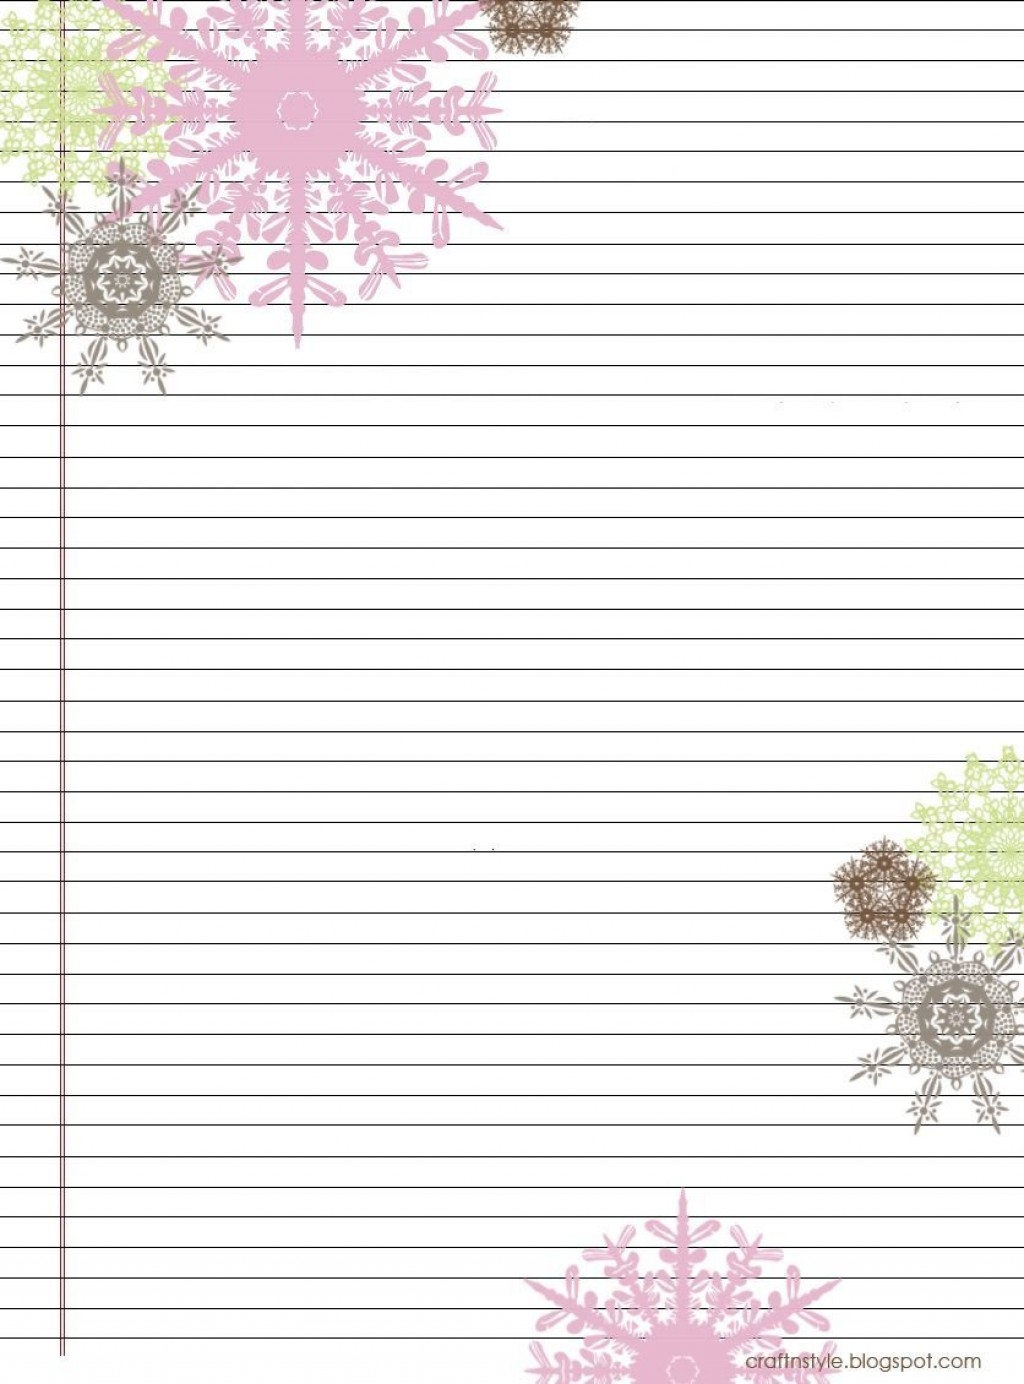 004 Stirring Free Printable Stationery Paper Template Inspiration  TemplatesLarge